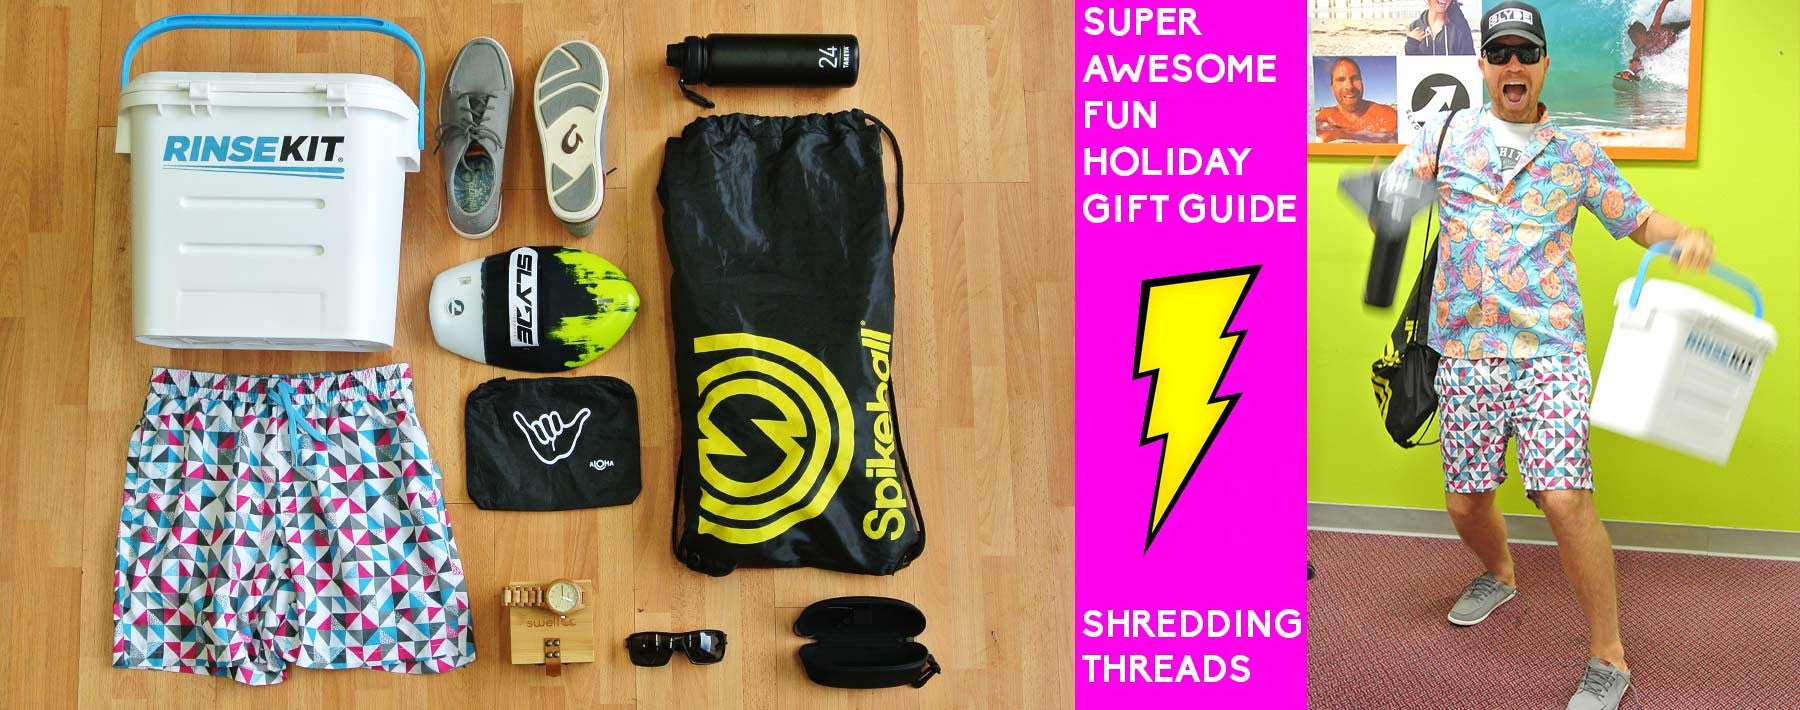 Epic Beach Gift Guide